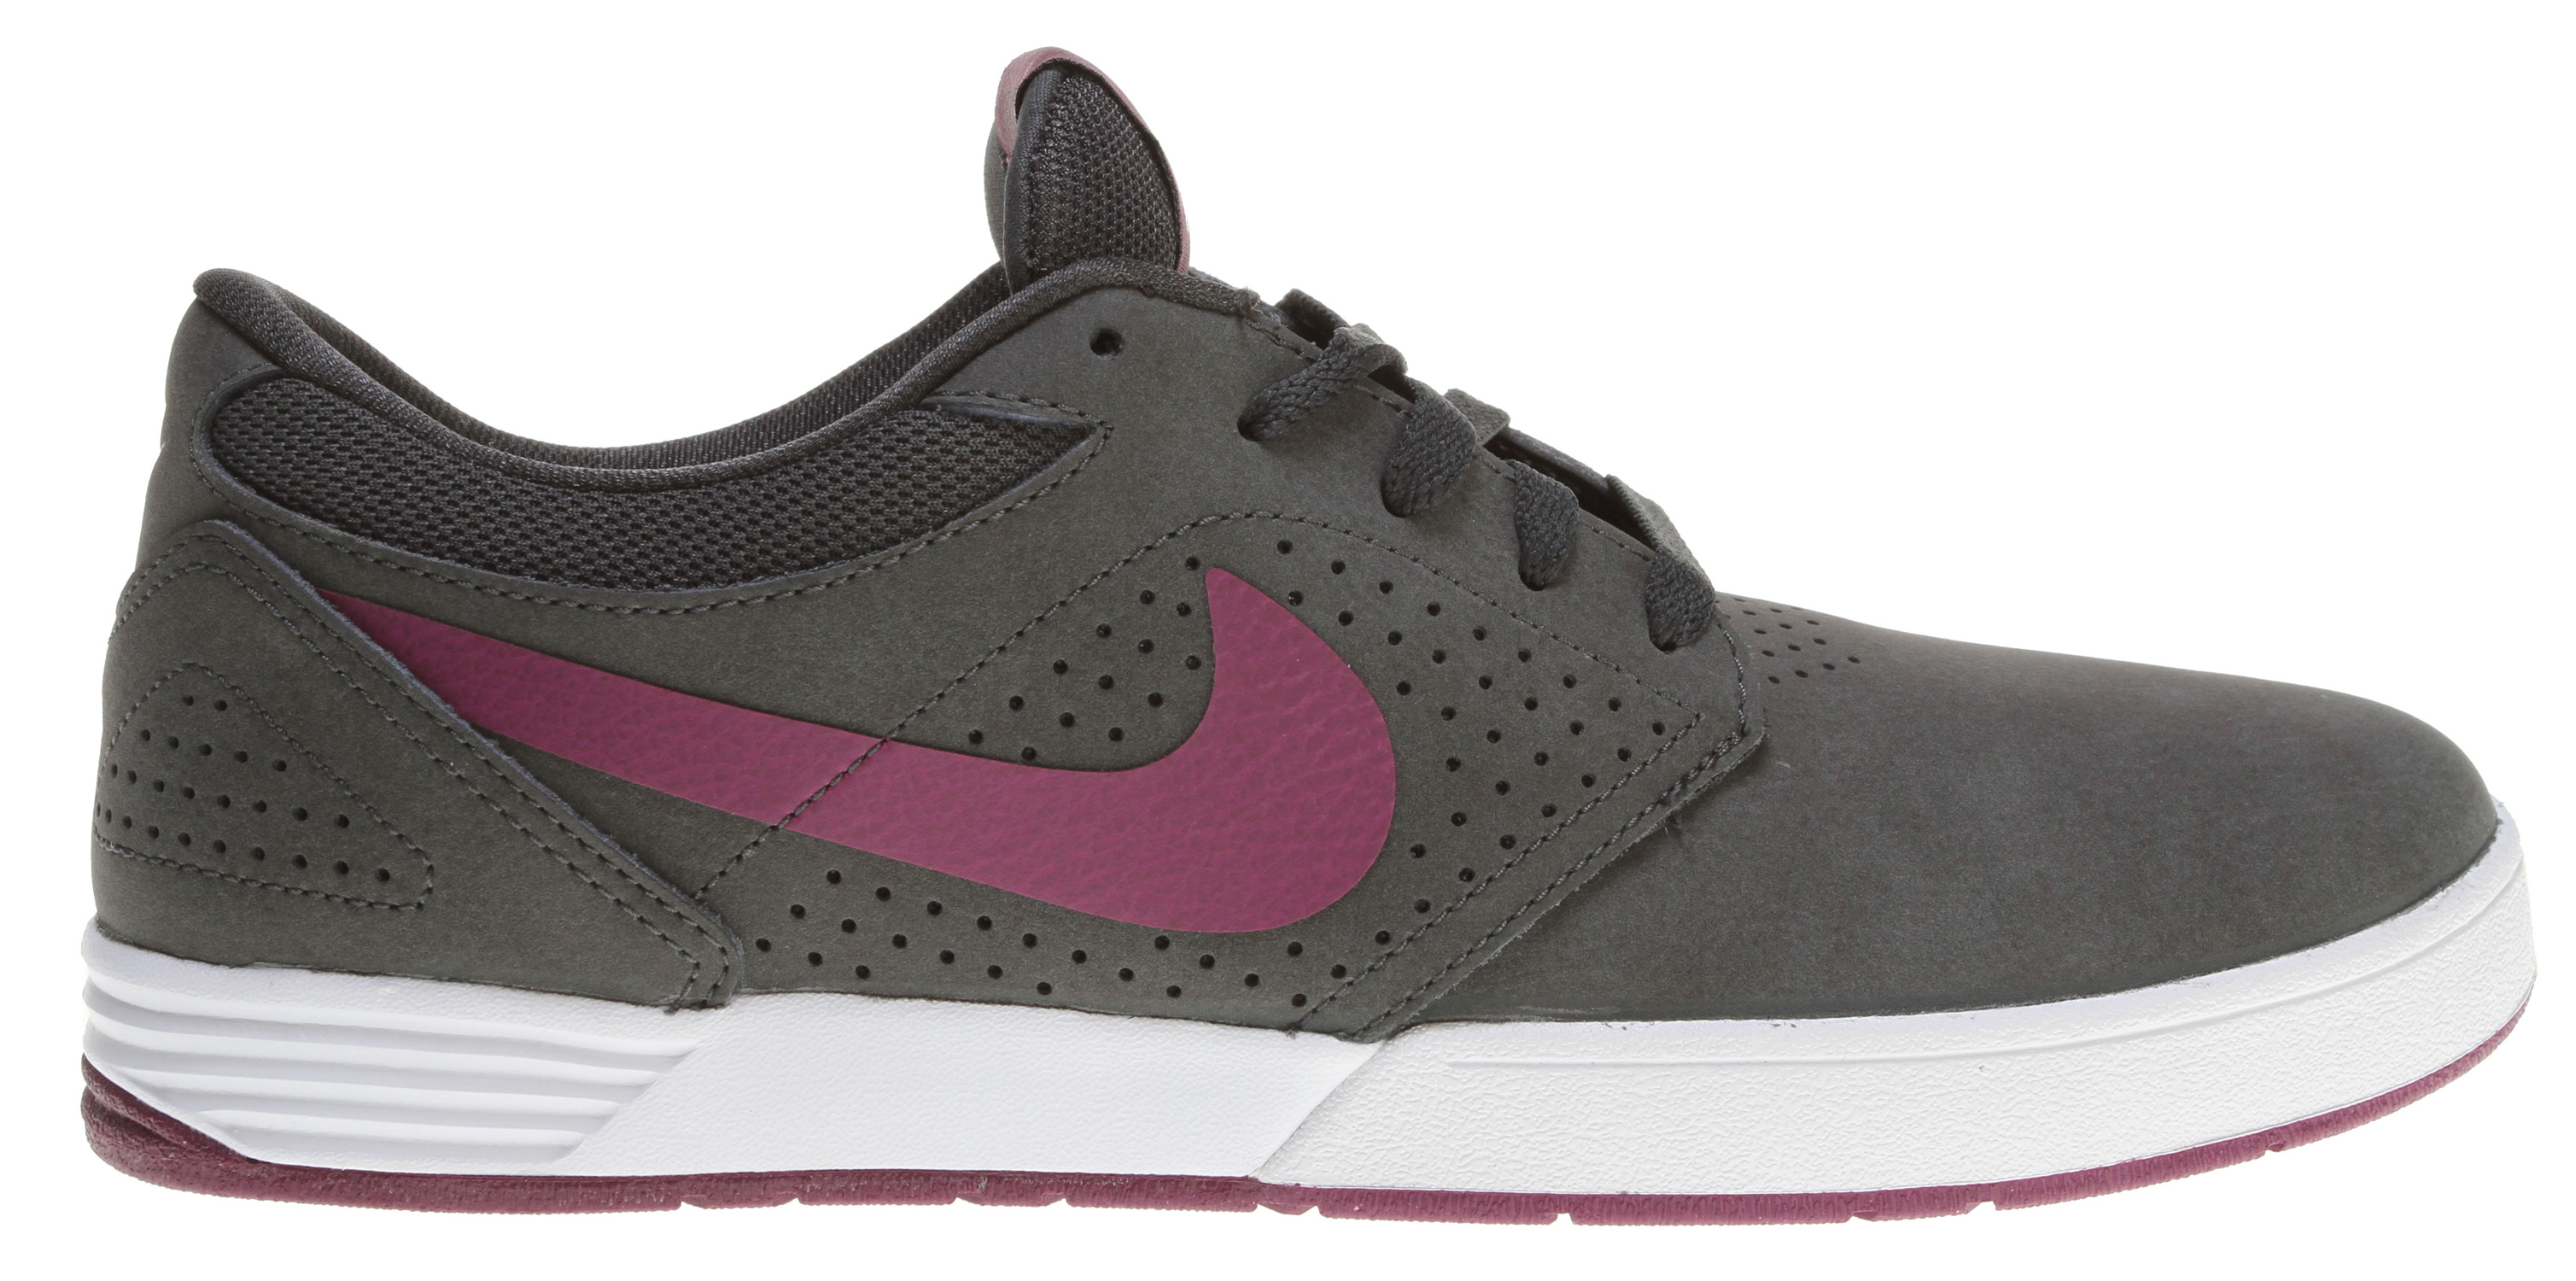 Skateboard Key Features of the Nike Paul Rodriguez 5 Skate Shoes: MIDSOLE: Phylon midsole for comfort. OUTSOLE: Rubber outsole for durability and support. Classic skate look with great material and color applications. UPPER: Suede, leather and Nubuck materials. - $62.95